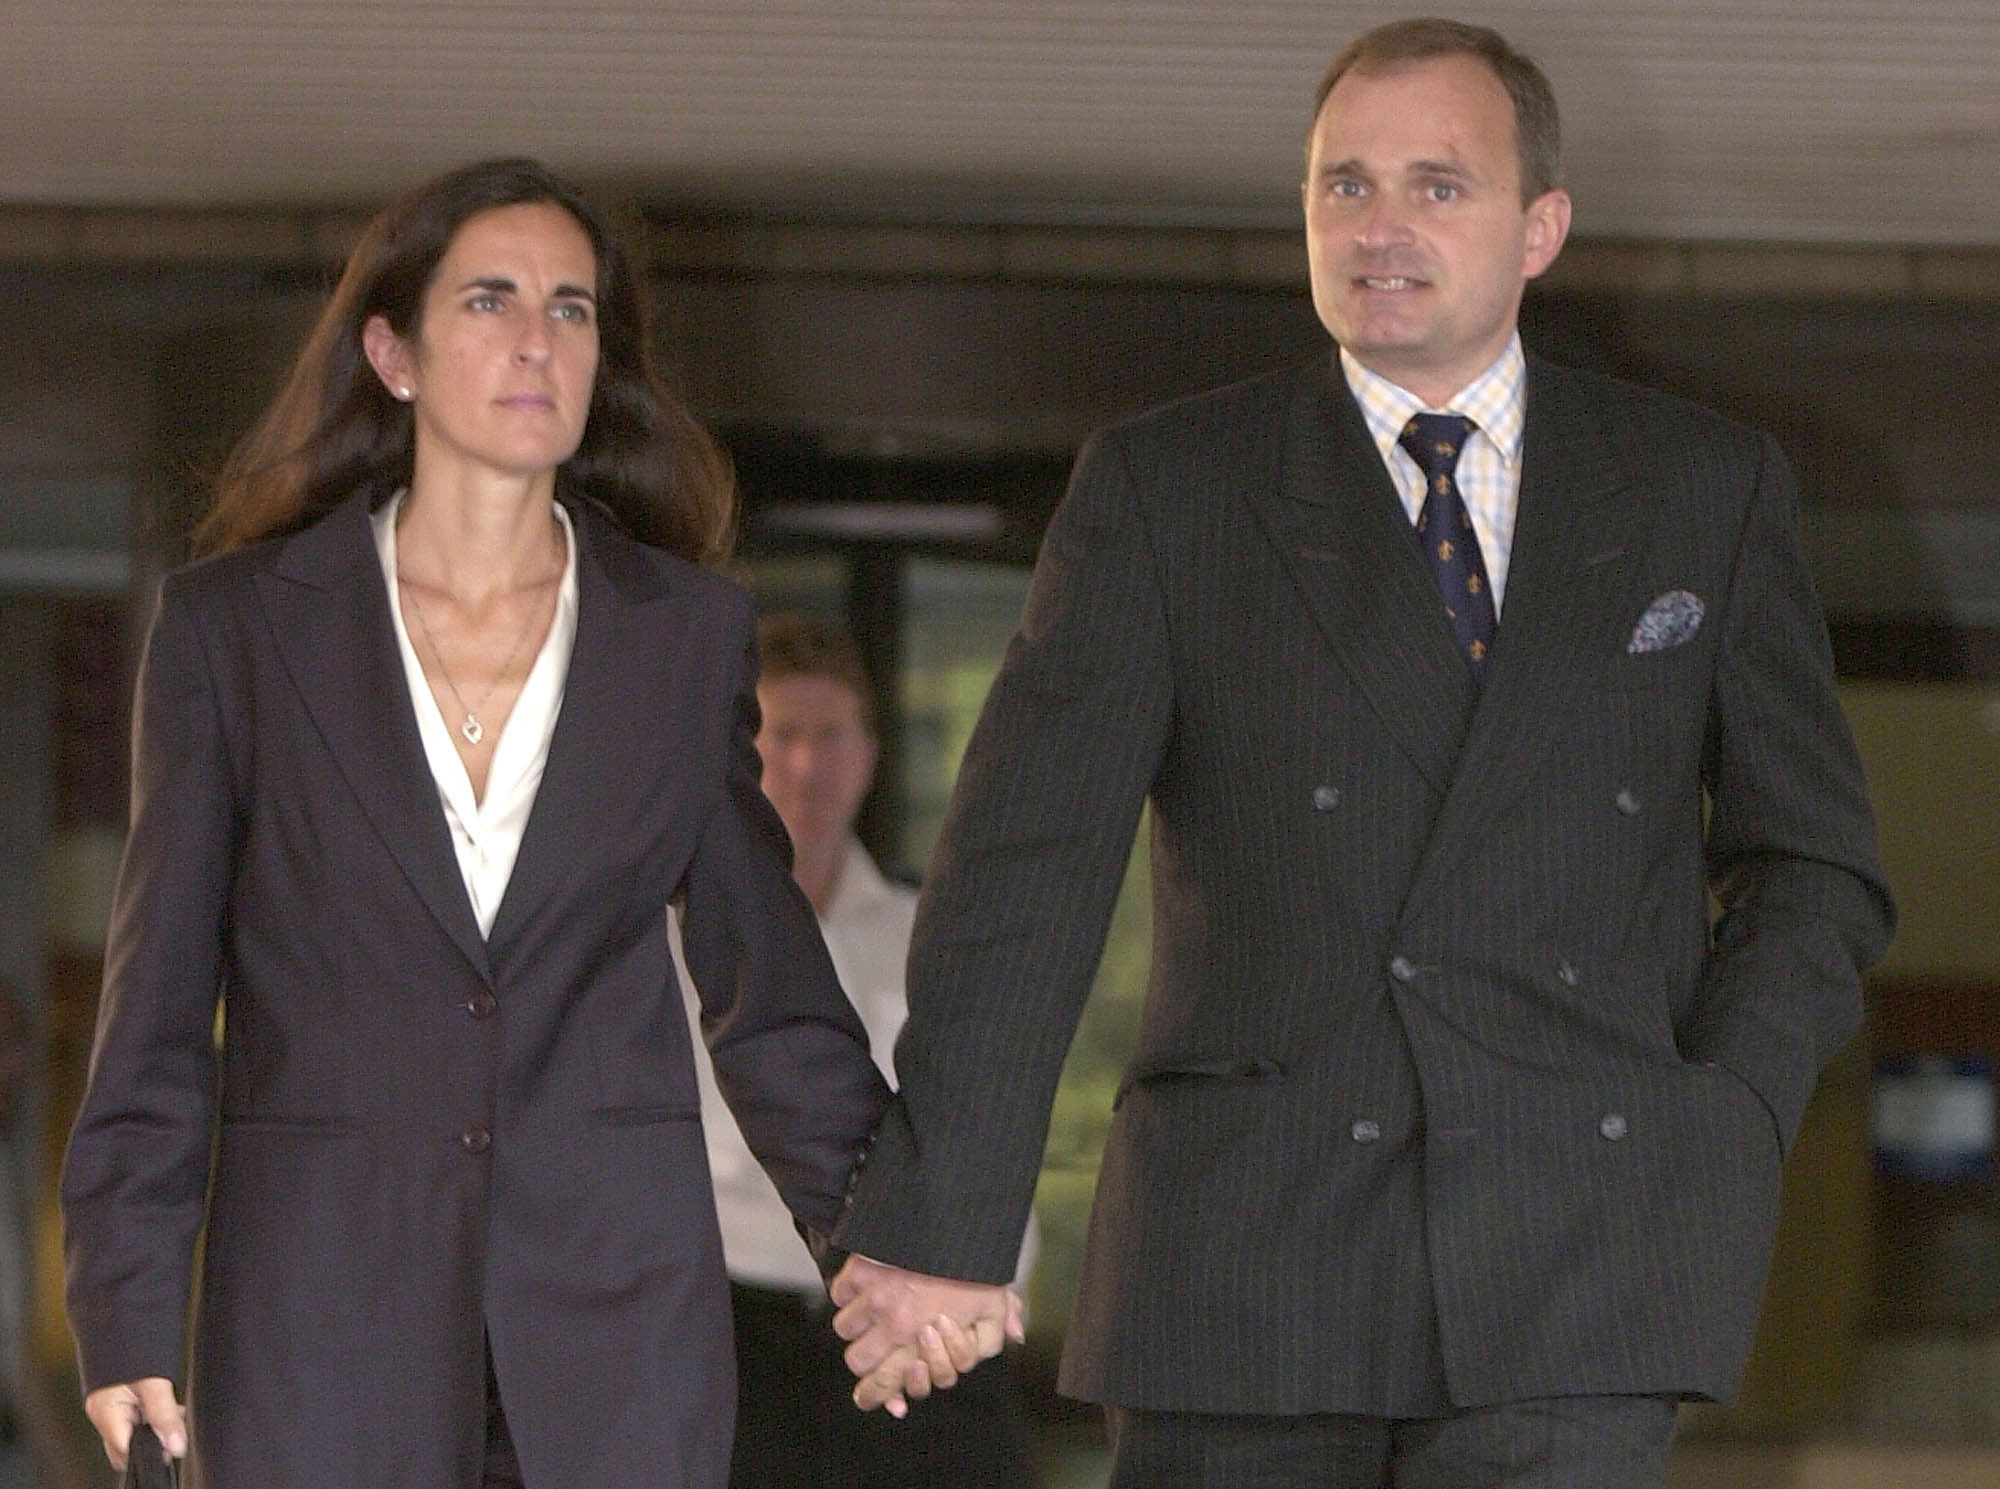 Charles Ingram and his wife Diana leave the Southwark Crown Court in southeast London Wednesday, Aug. 28, 2002. (AP Photo/Richard Lewis)